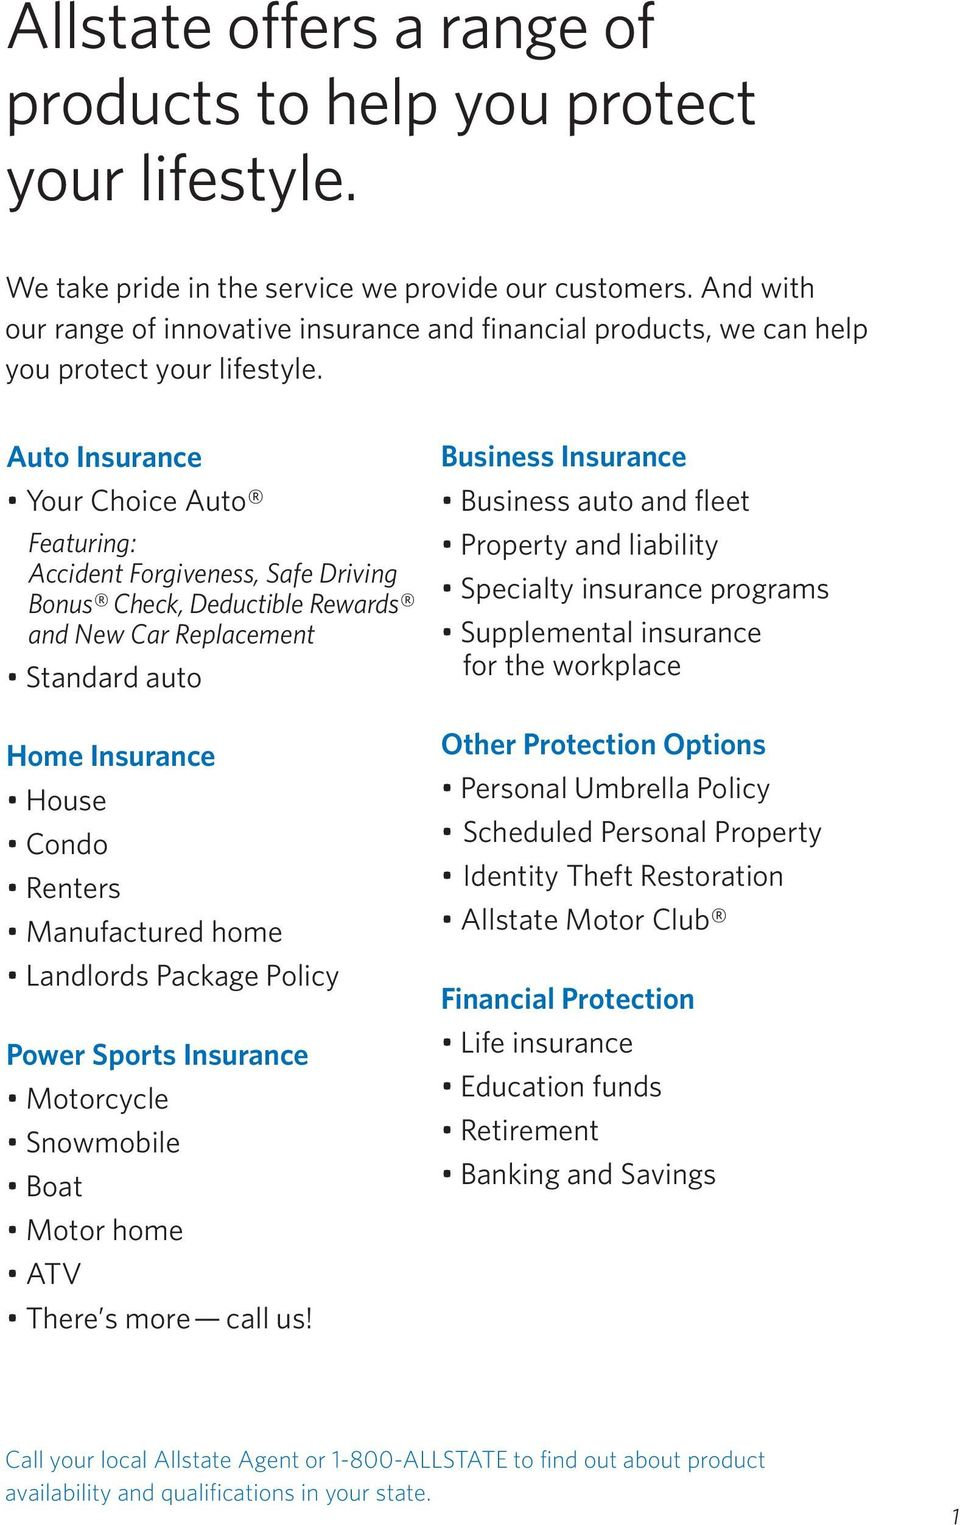 Auto Insurance Your Choice Auto Featuring: Accident Forgiveness, Safe Driving Bonus Check, Deductible Rewards and New Car Replacement Standard auto Home Insurance House Condo Renters Manufactured